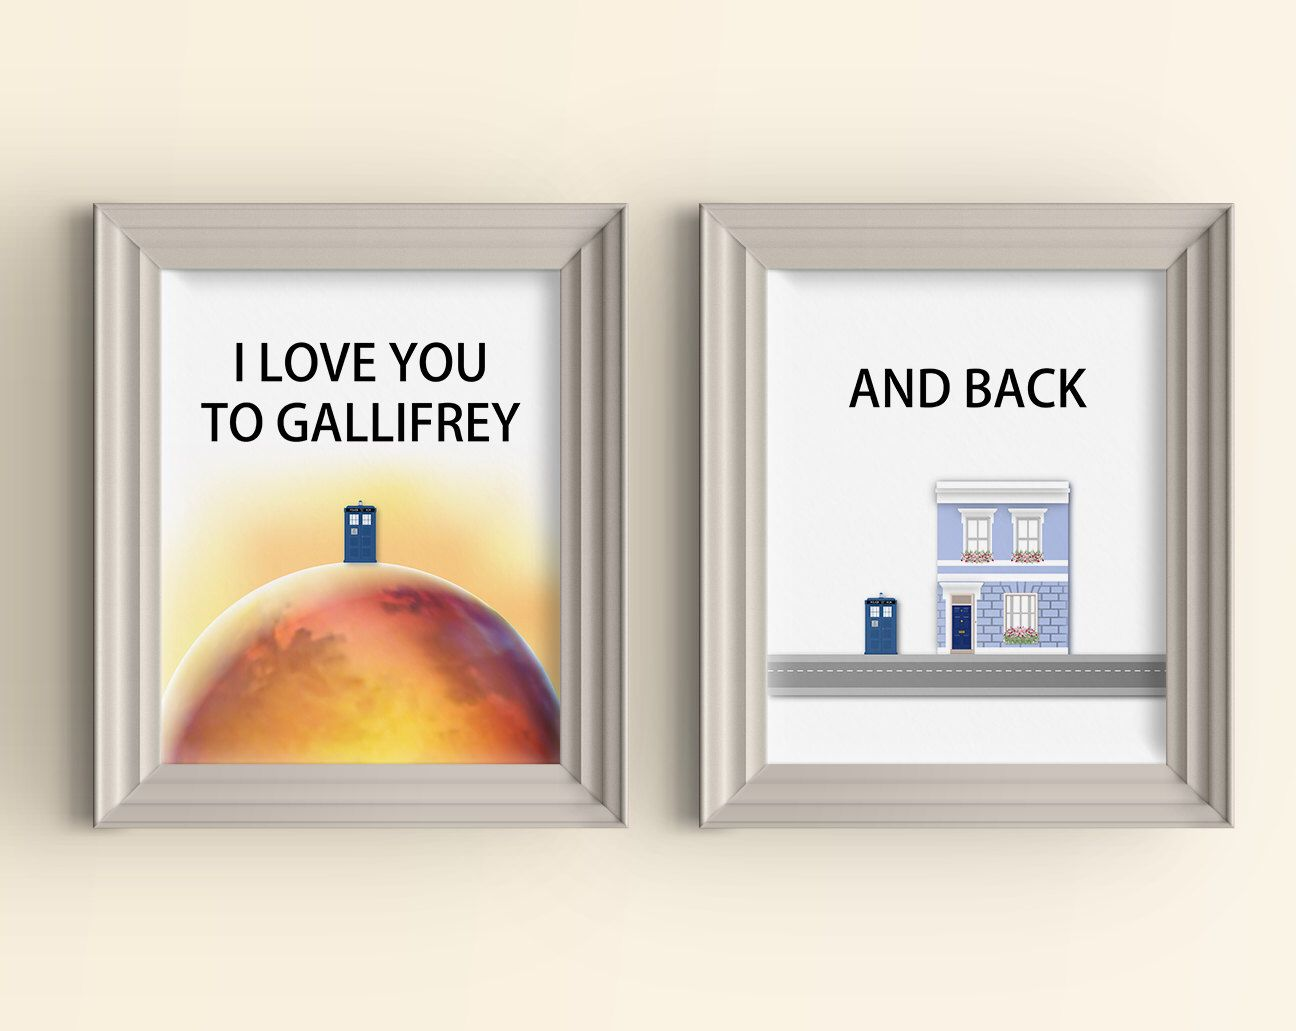 Best 25 doctor who baby ideas on pinterest doctor who room i love you to galifrey and back art print set 11 x 14 doctor who wall amipublicfo Choice Image